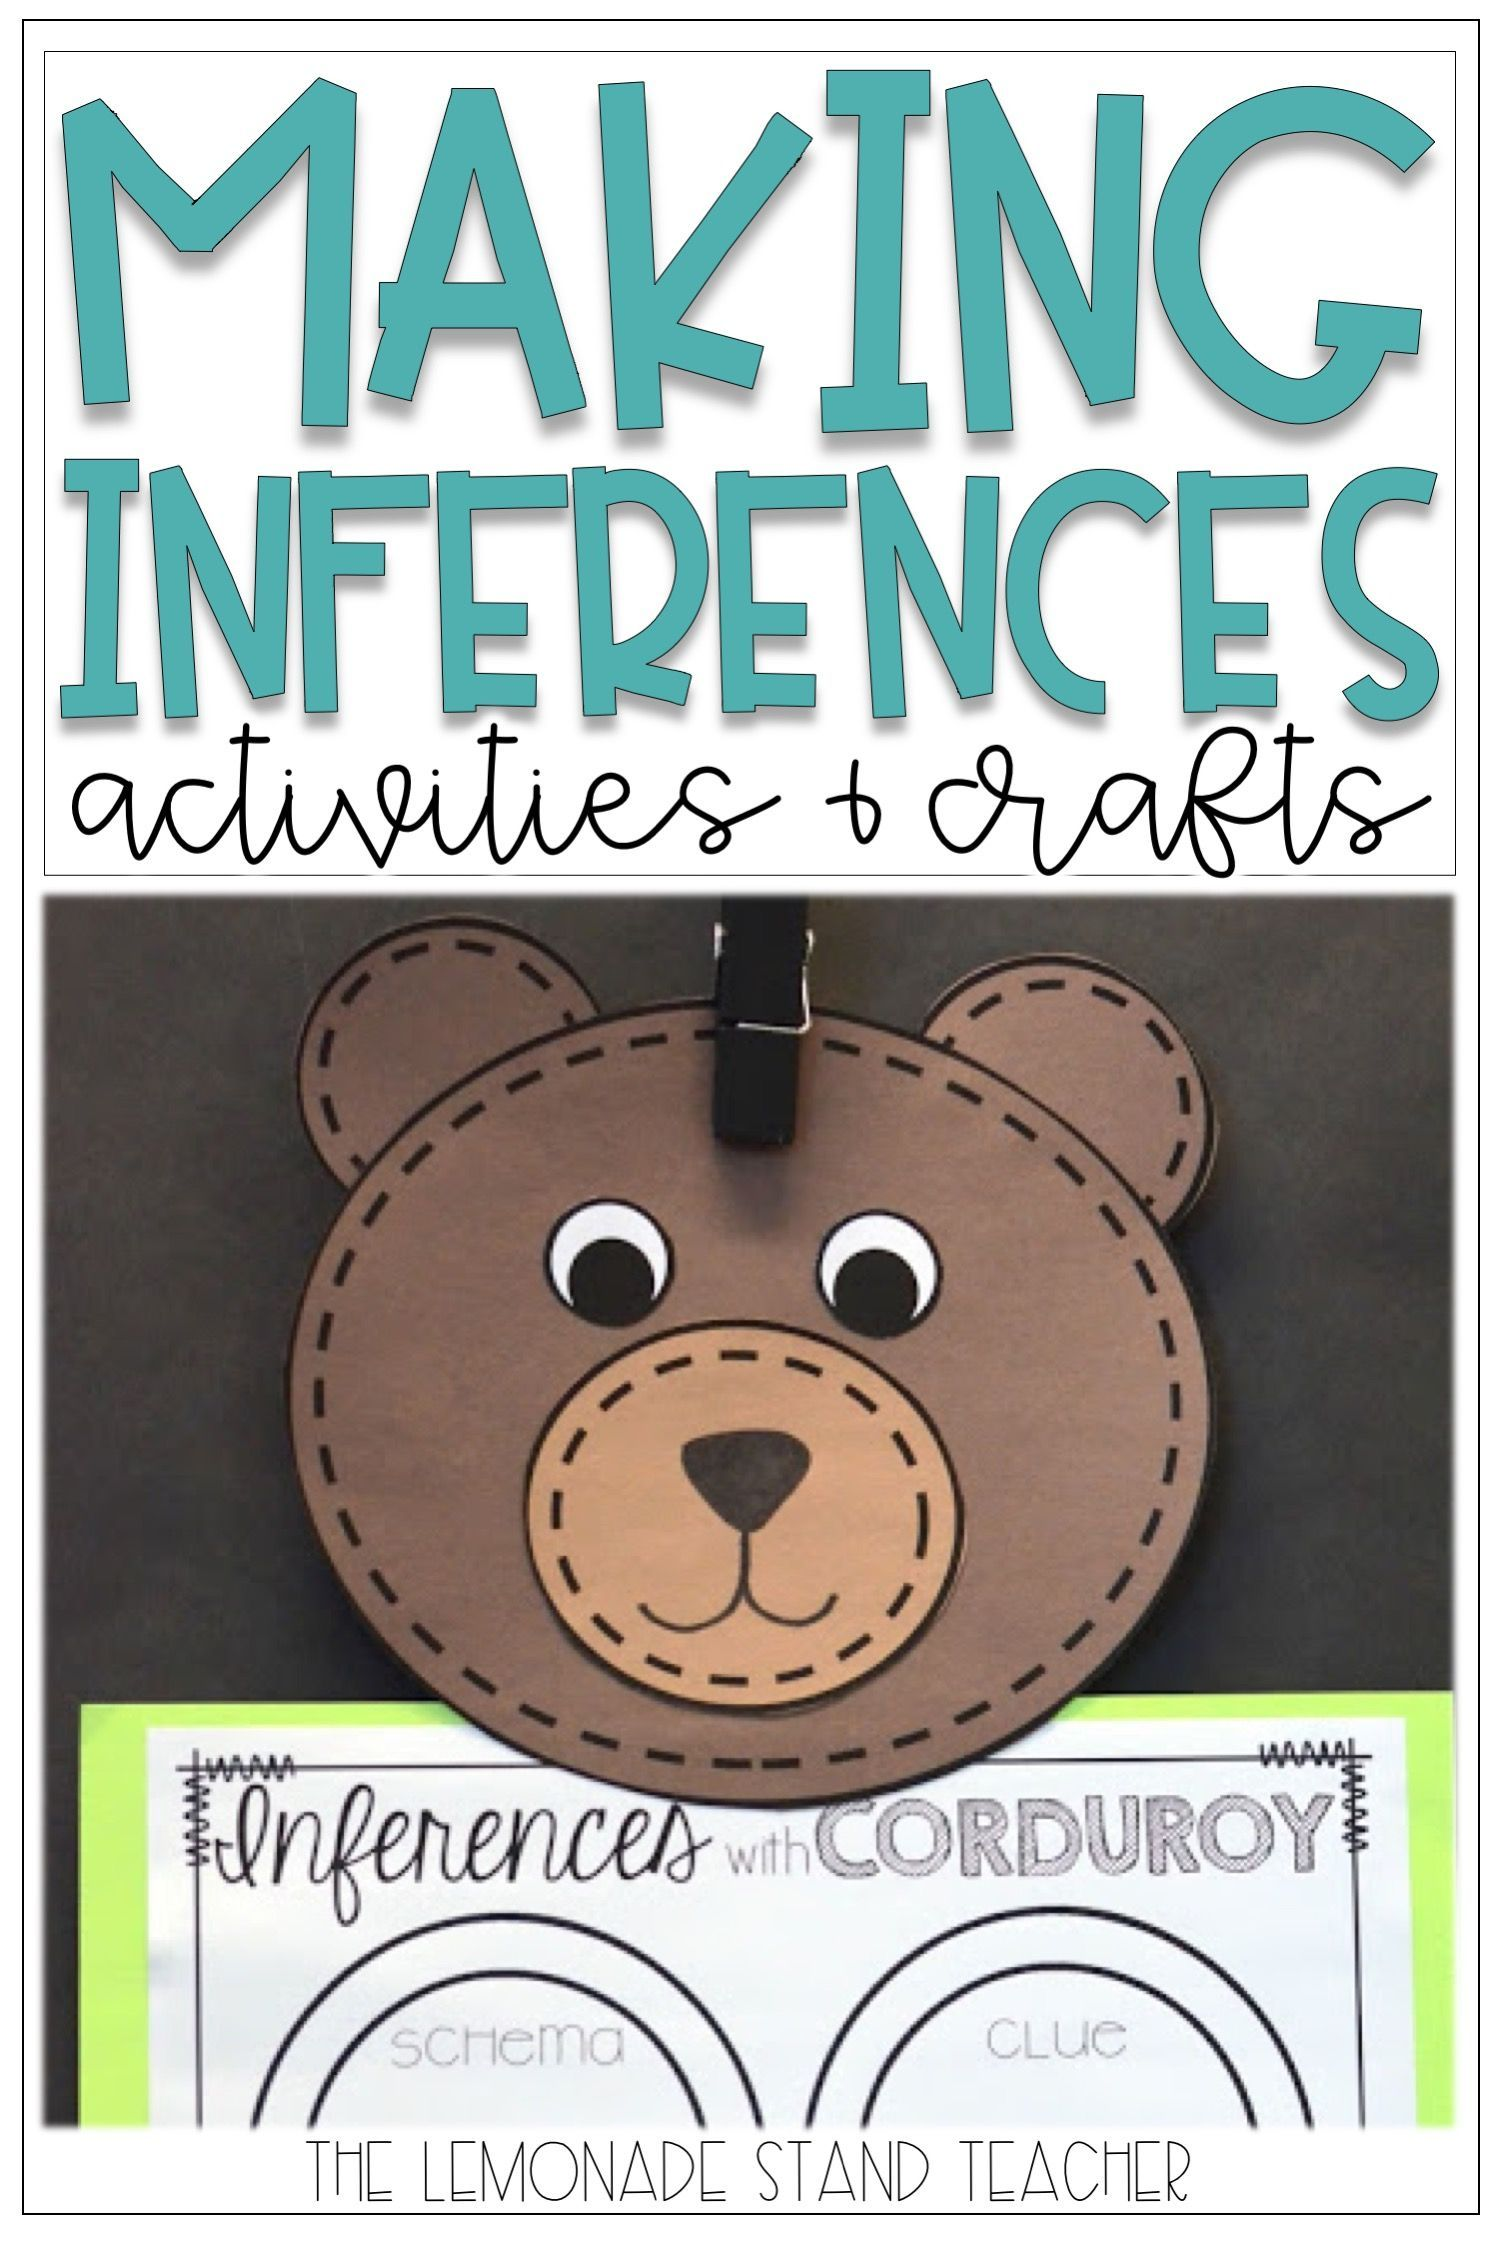 These Activities And Crafts For 1st And 2nd Grade Are A